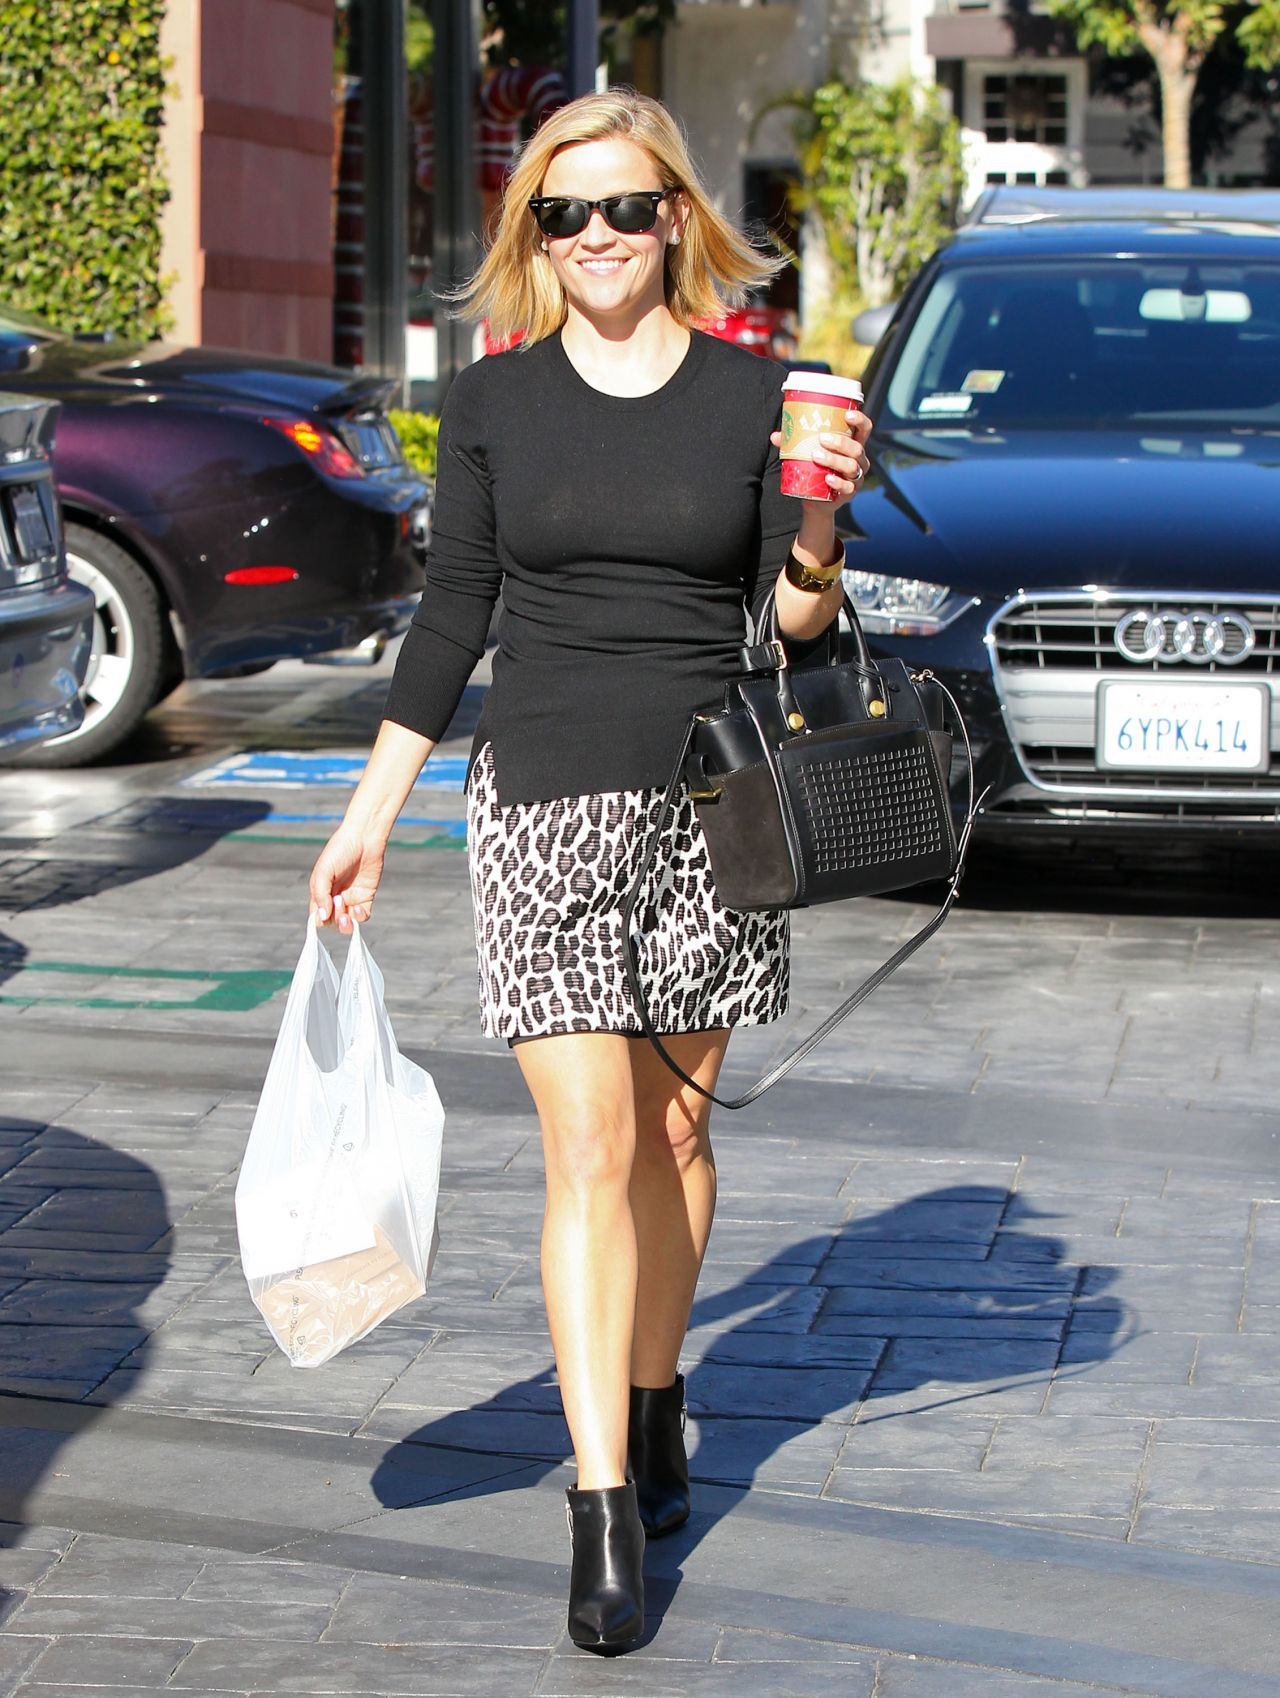 Reese Witherspoon - Lunch Time - West Hollywood December 2013